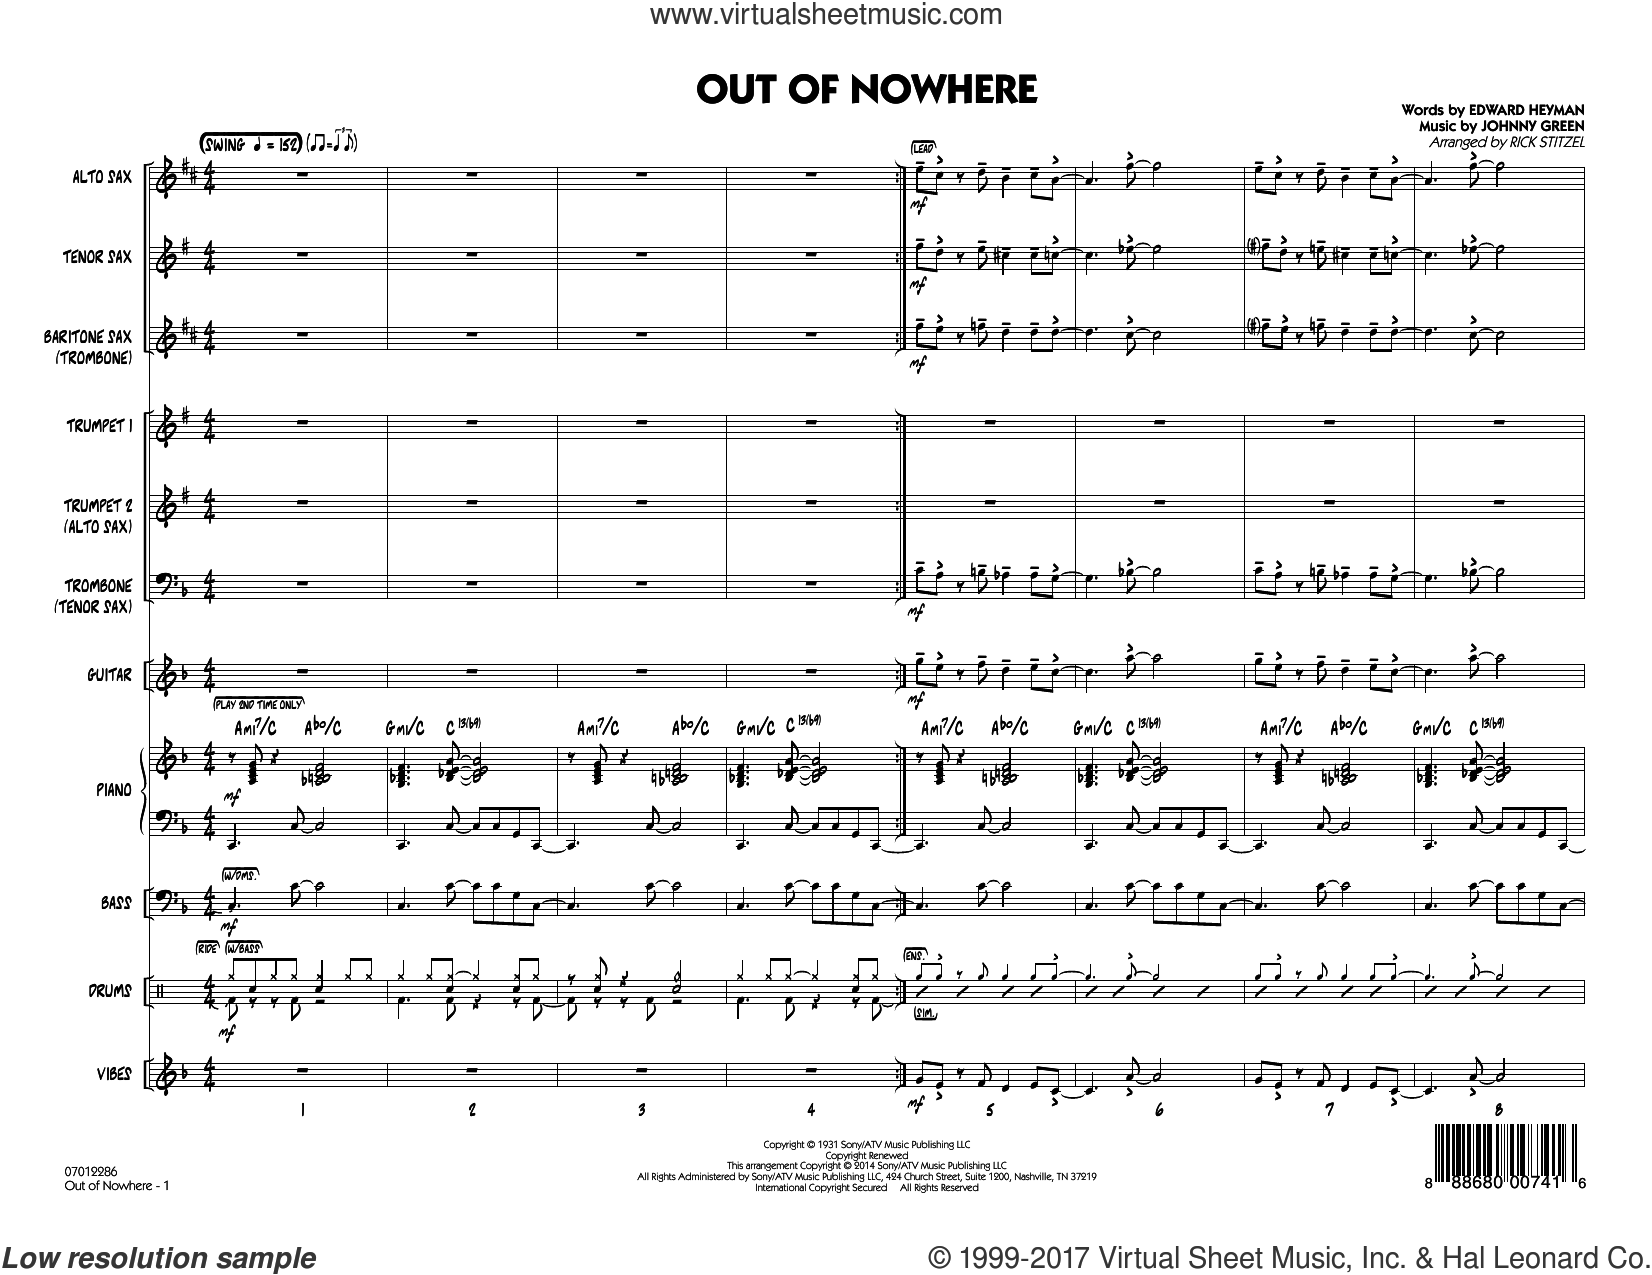 Out of Nowhere (COMPLETE) sheet music for jazz band by Edward Heyman, Buddy DeFranco, Johnny Green and Rick Stitzel, intermediate jazz band. Score Image Preview.